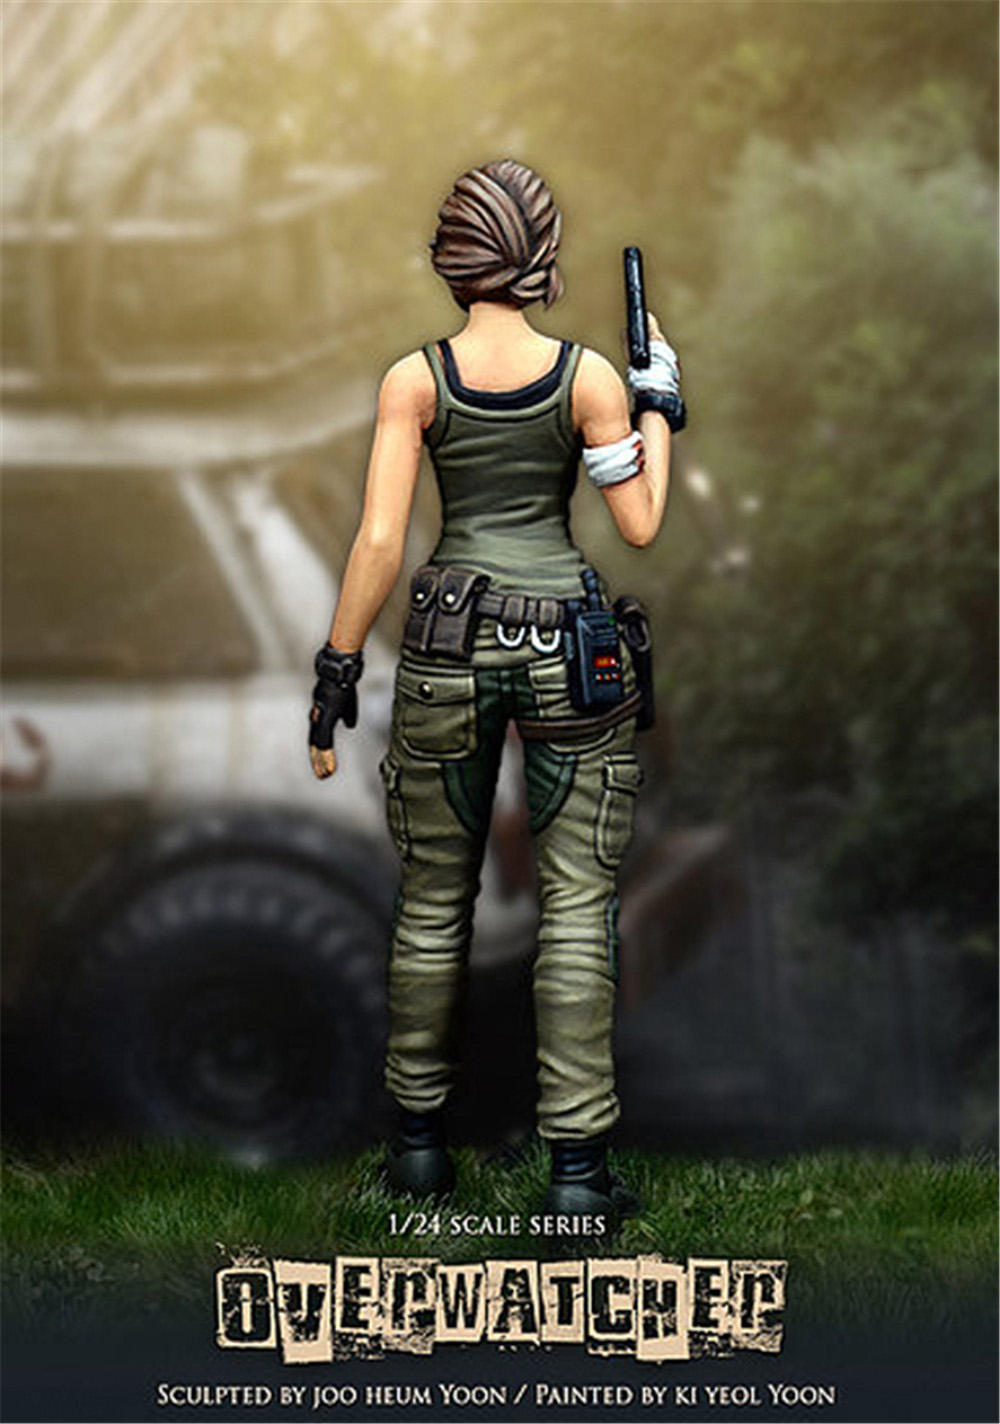 75mm Beauty Overwatcher Soldier Resin Figure 1/24 Scale Model Figure Resin Kit Colorless Self-Assembled Toy 3